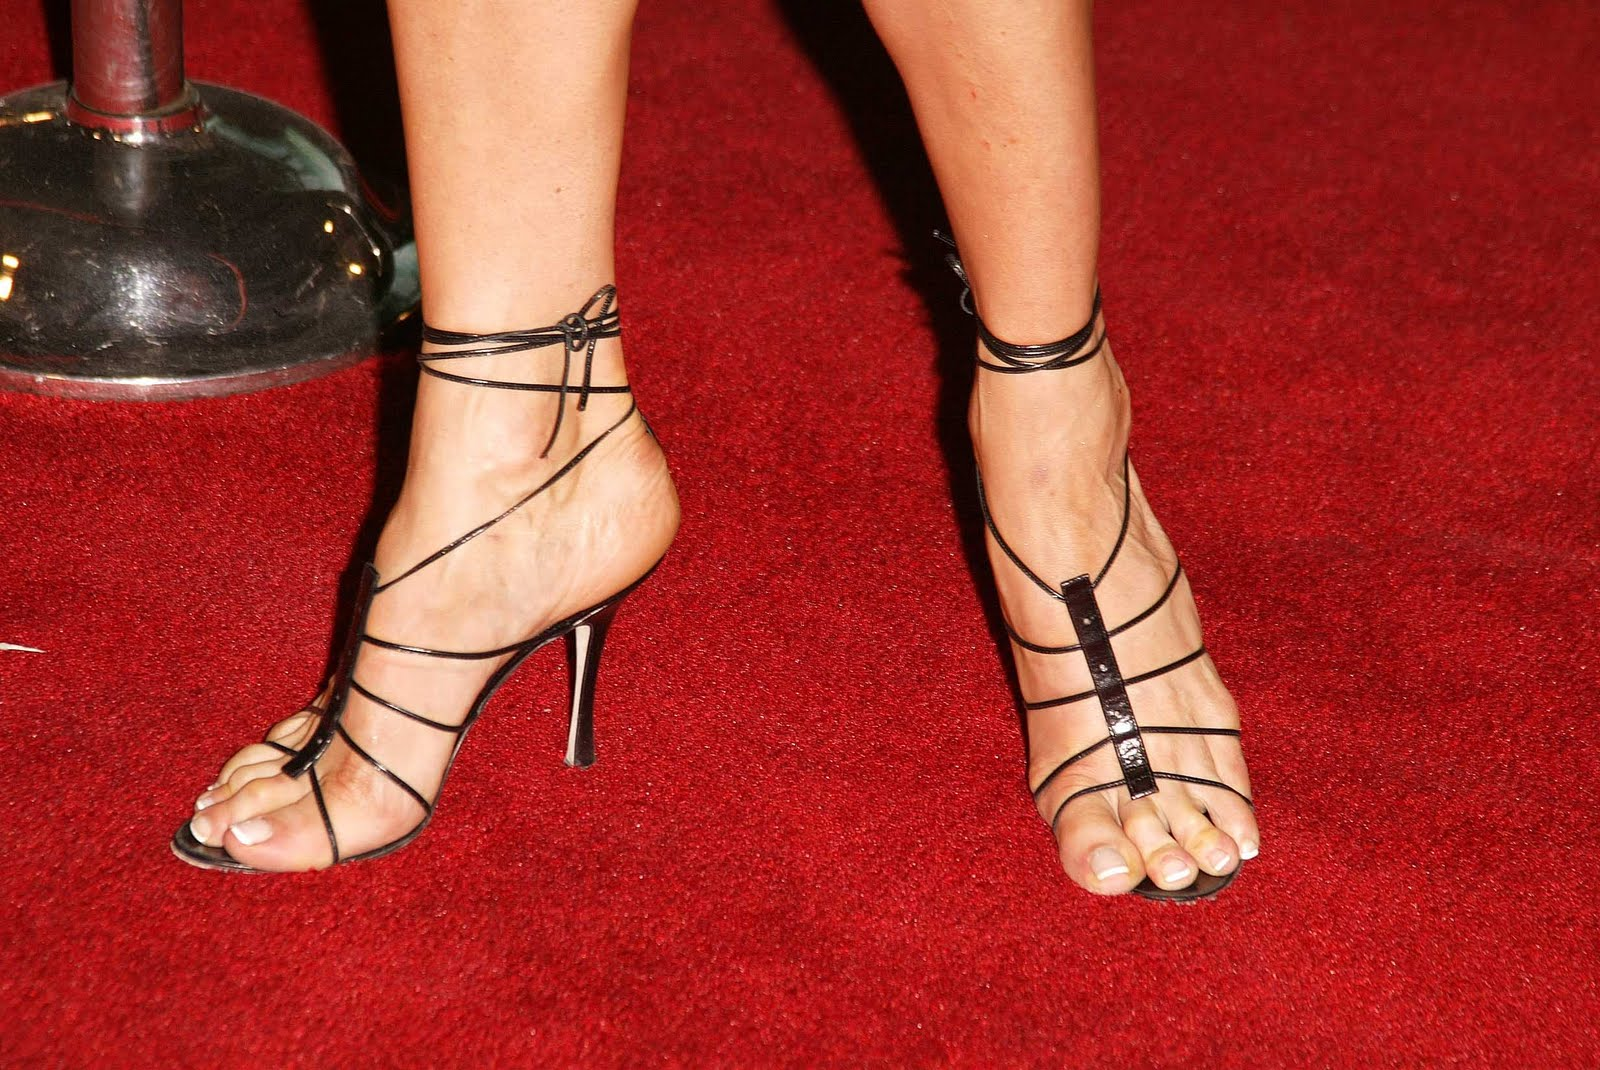 Jenna Elfman Feet, Legs And Shoes Photos